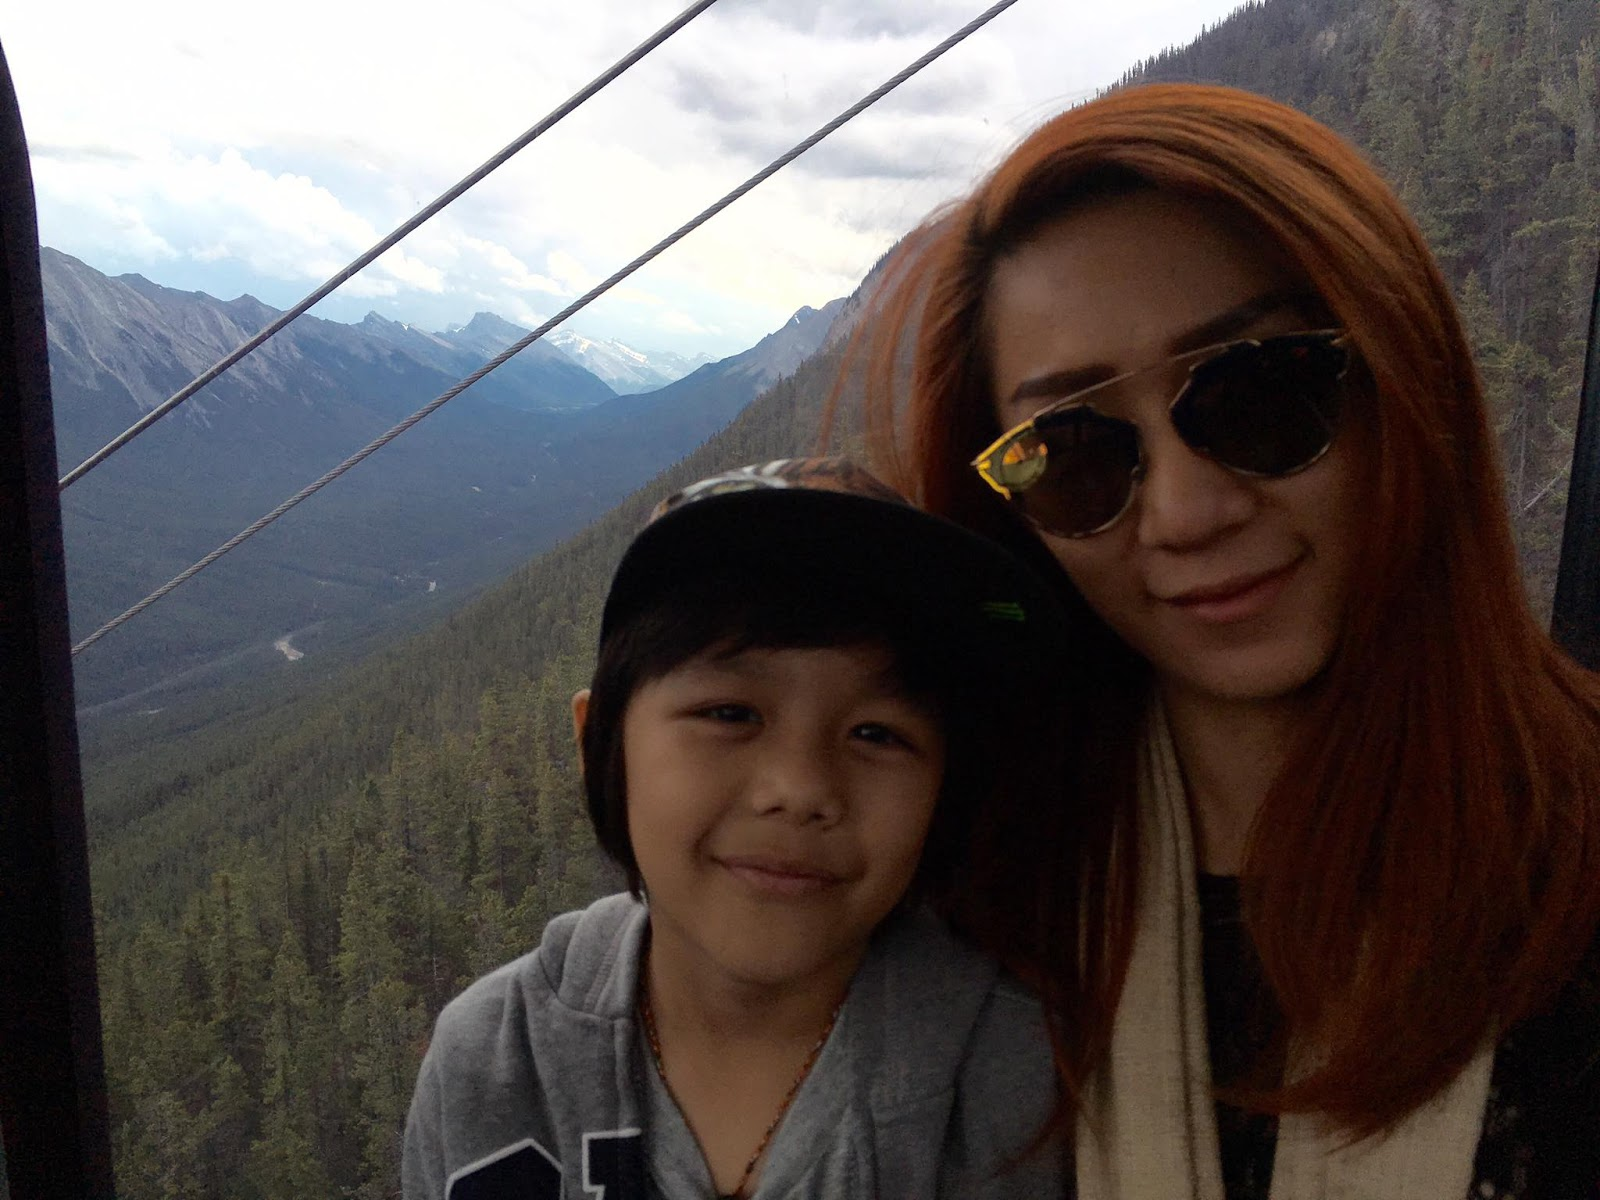 R Zar Ni And Family Visit To Canadian Rocky Mountains , Banff Gondola At Sulphur Mountain , To Perform in Calgary, Alberta Pictures Special